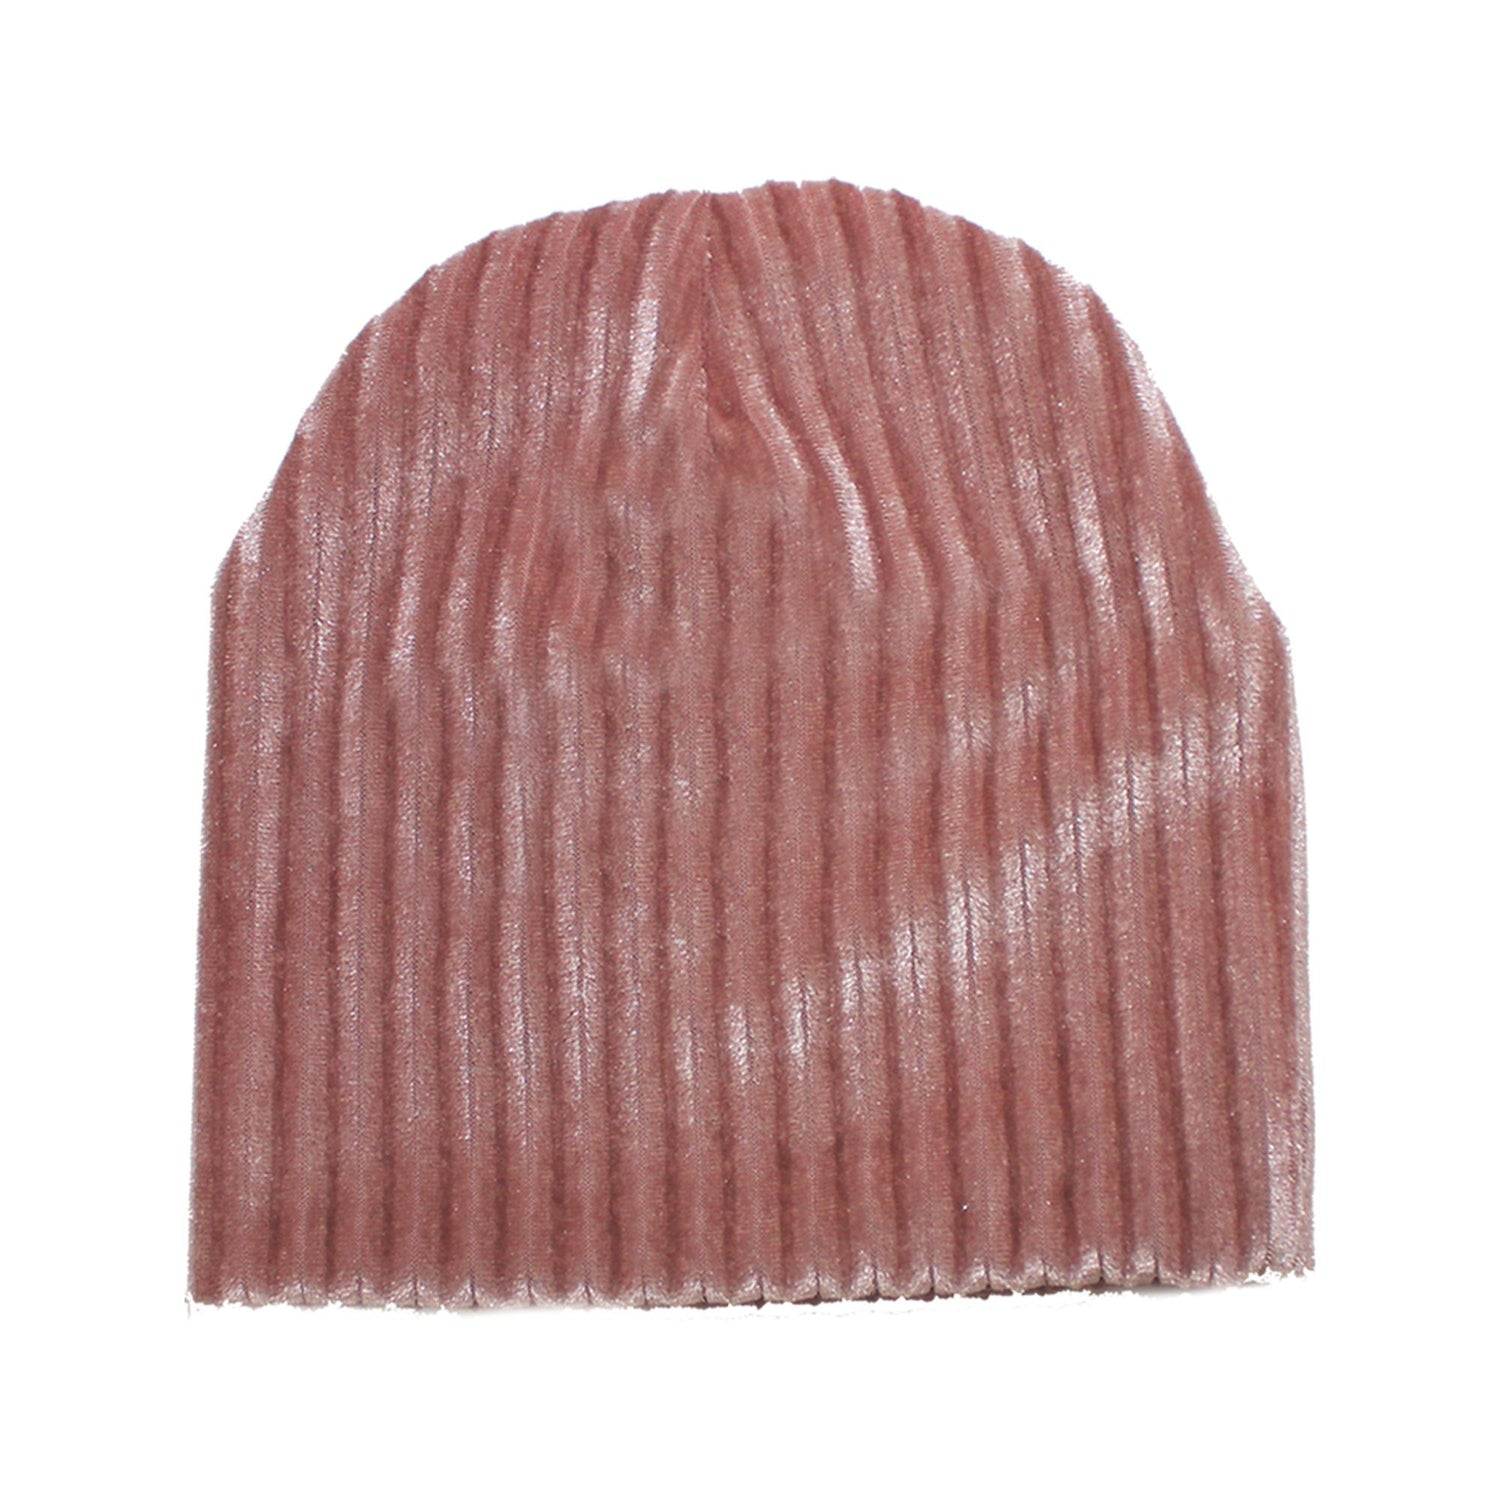 Ribbed Velvet Beanie With Matching Pom